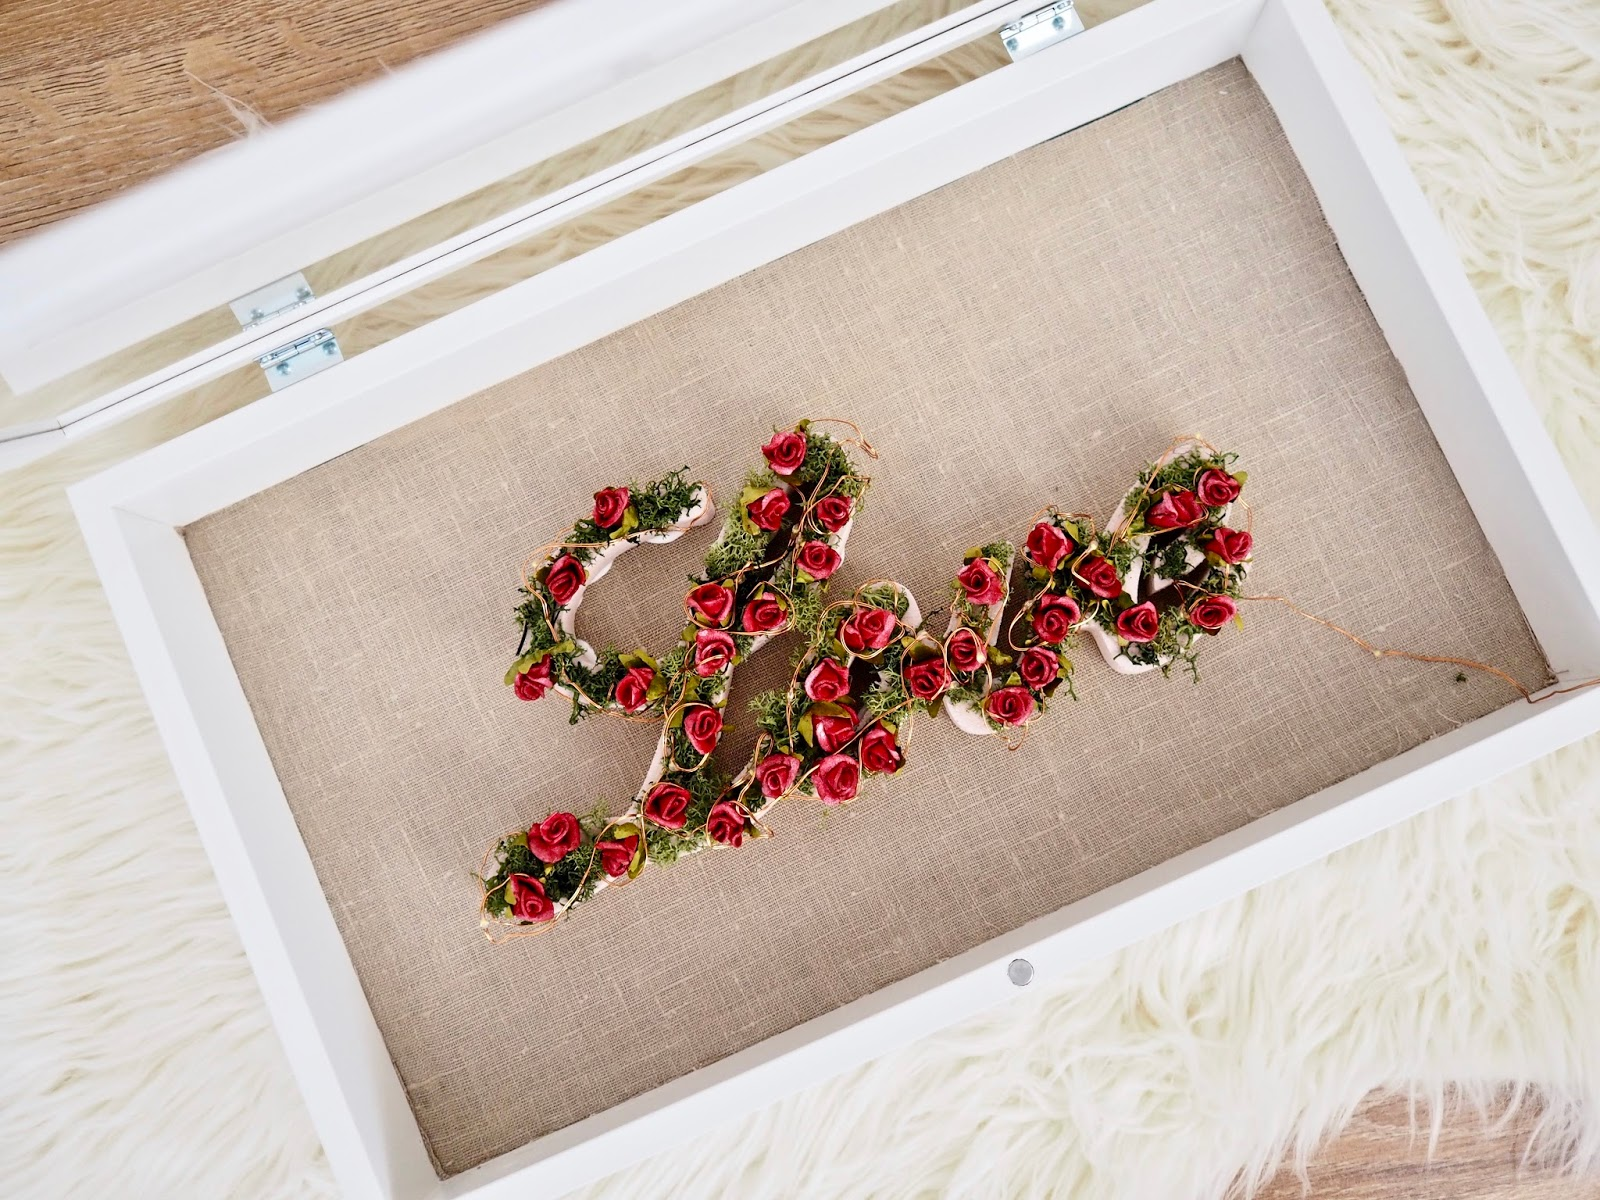 DIY Valentine's Day frame box sign with fake blooms